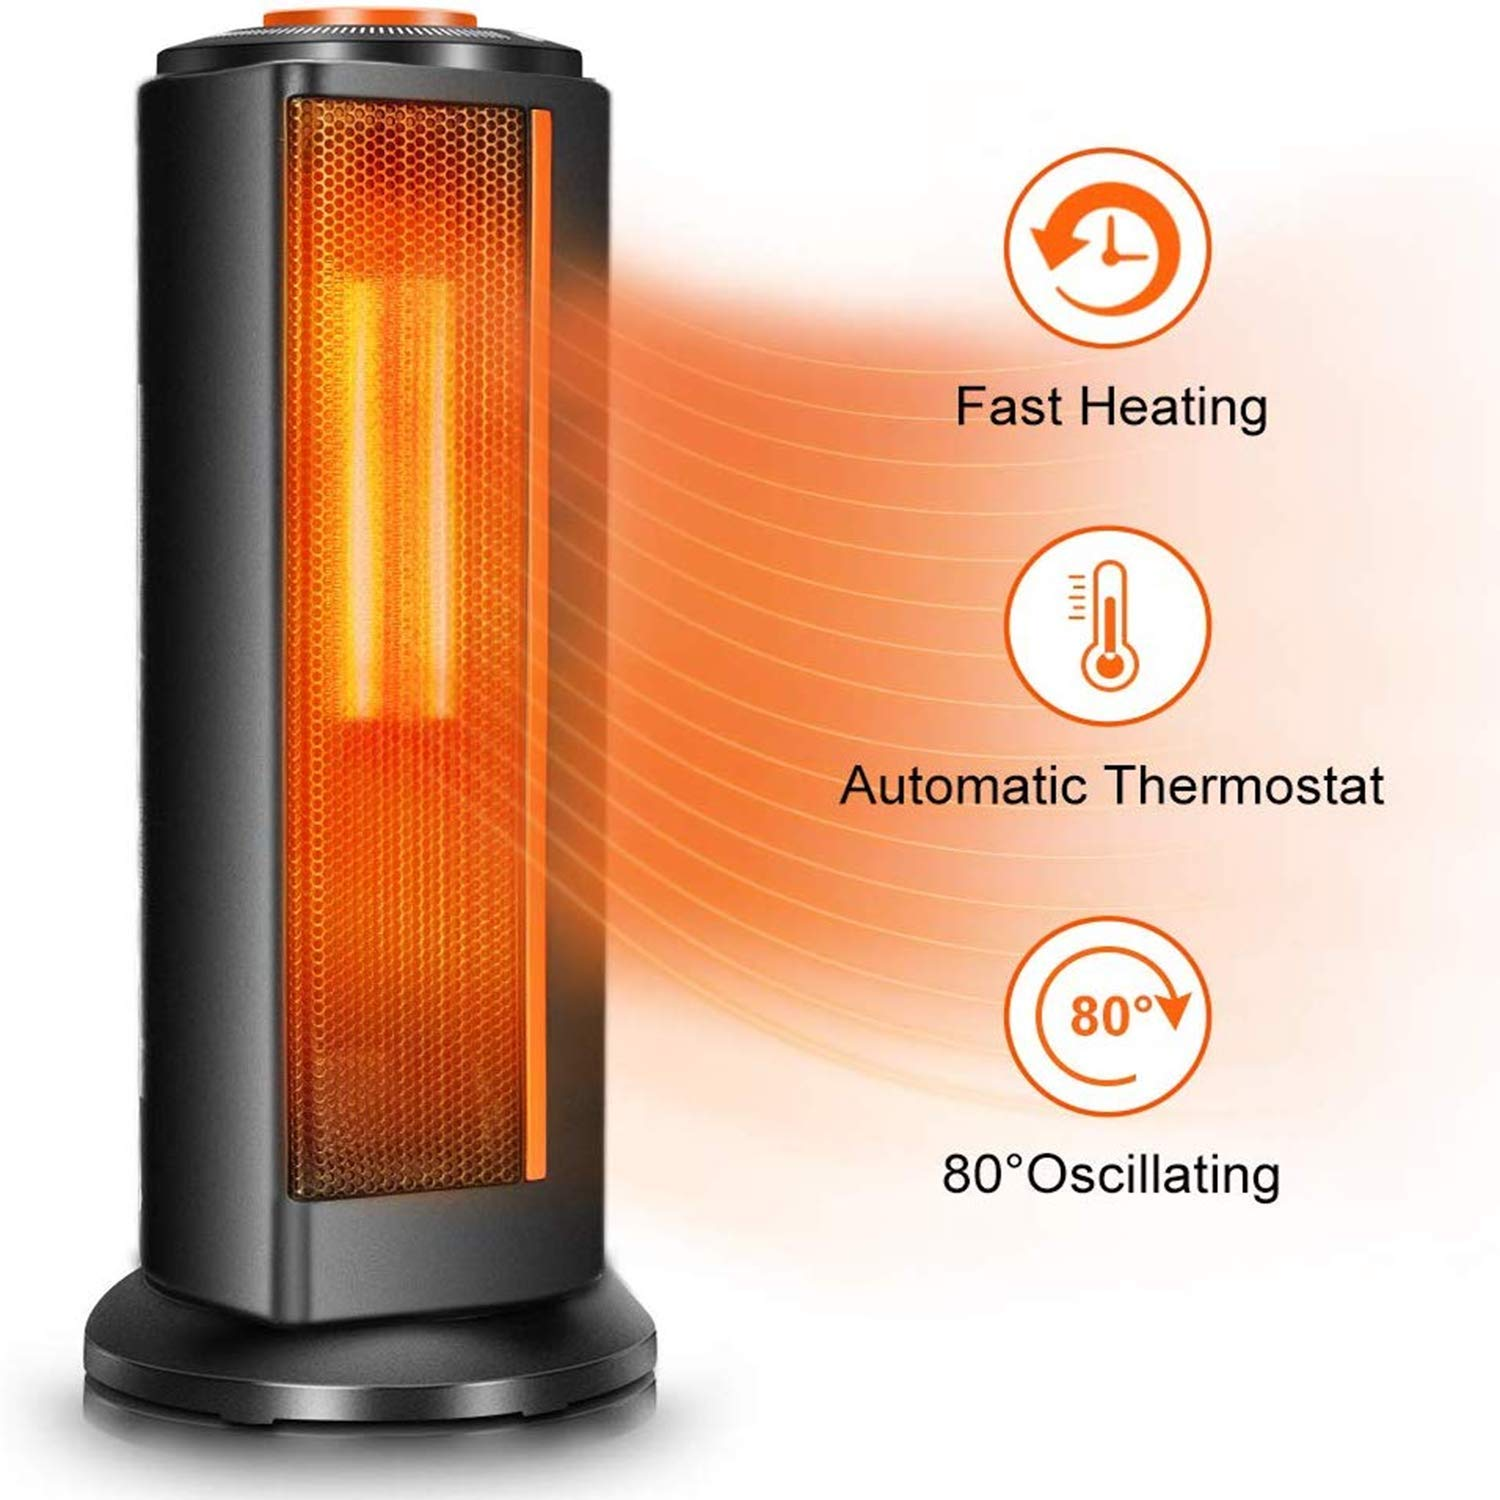 Space Heater Fan for Office - Quiet Portable Oscillating Electric Ceramic Tower Heater w/Thermostat, 1500W Fast Heating, Overheat & Tip-Over Protection, Ideal for Personal & Bedroom & Home Indoor Use